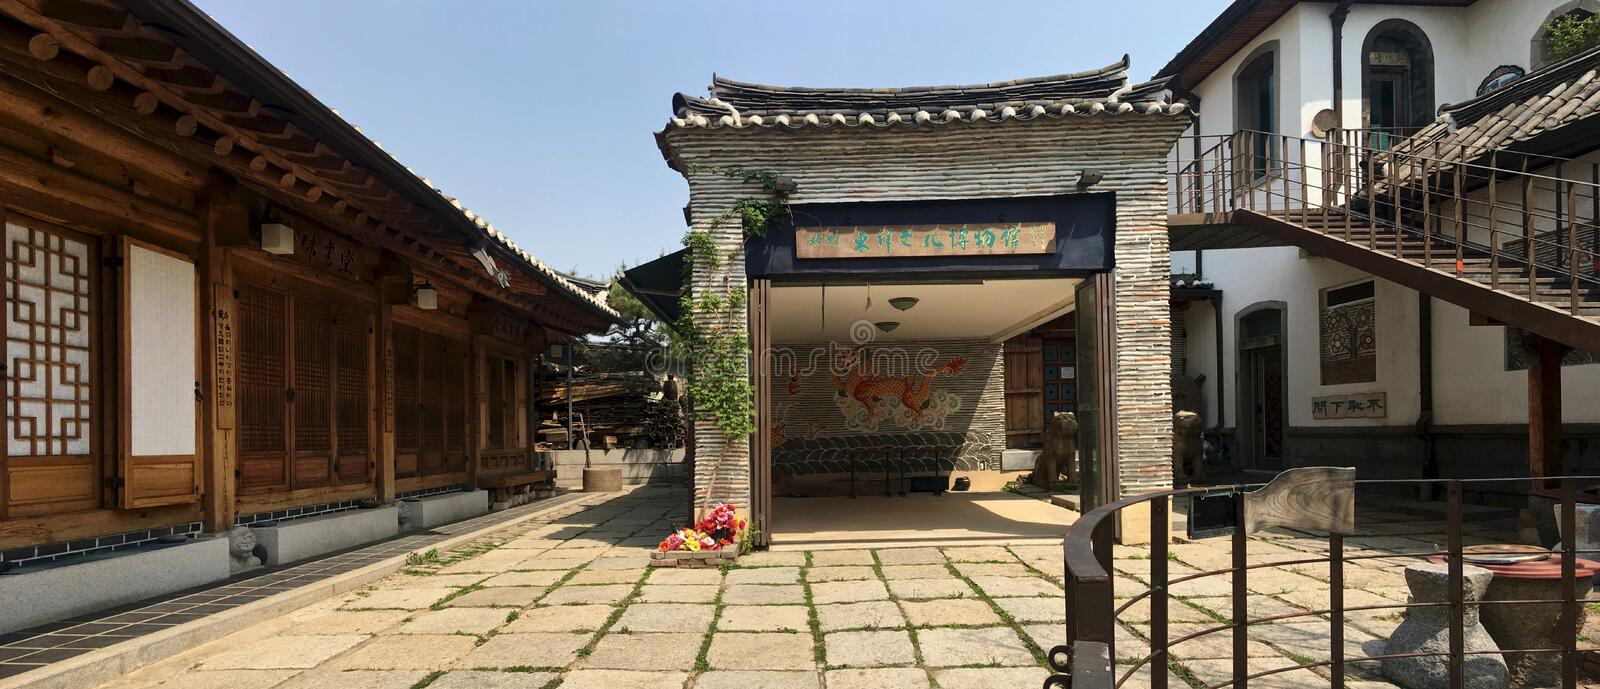 Panoramic view of the old historic Korean courtyard in the historical part of Seoul royalty free stock photography